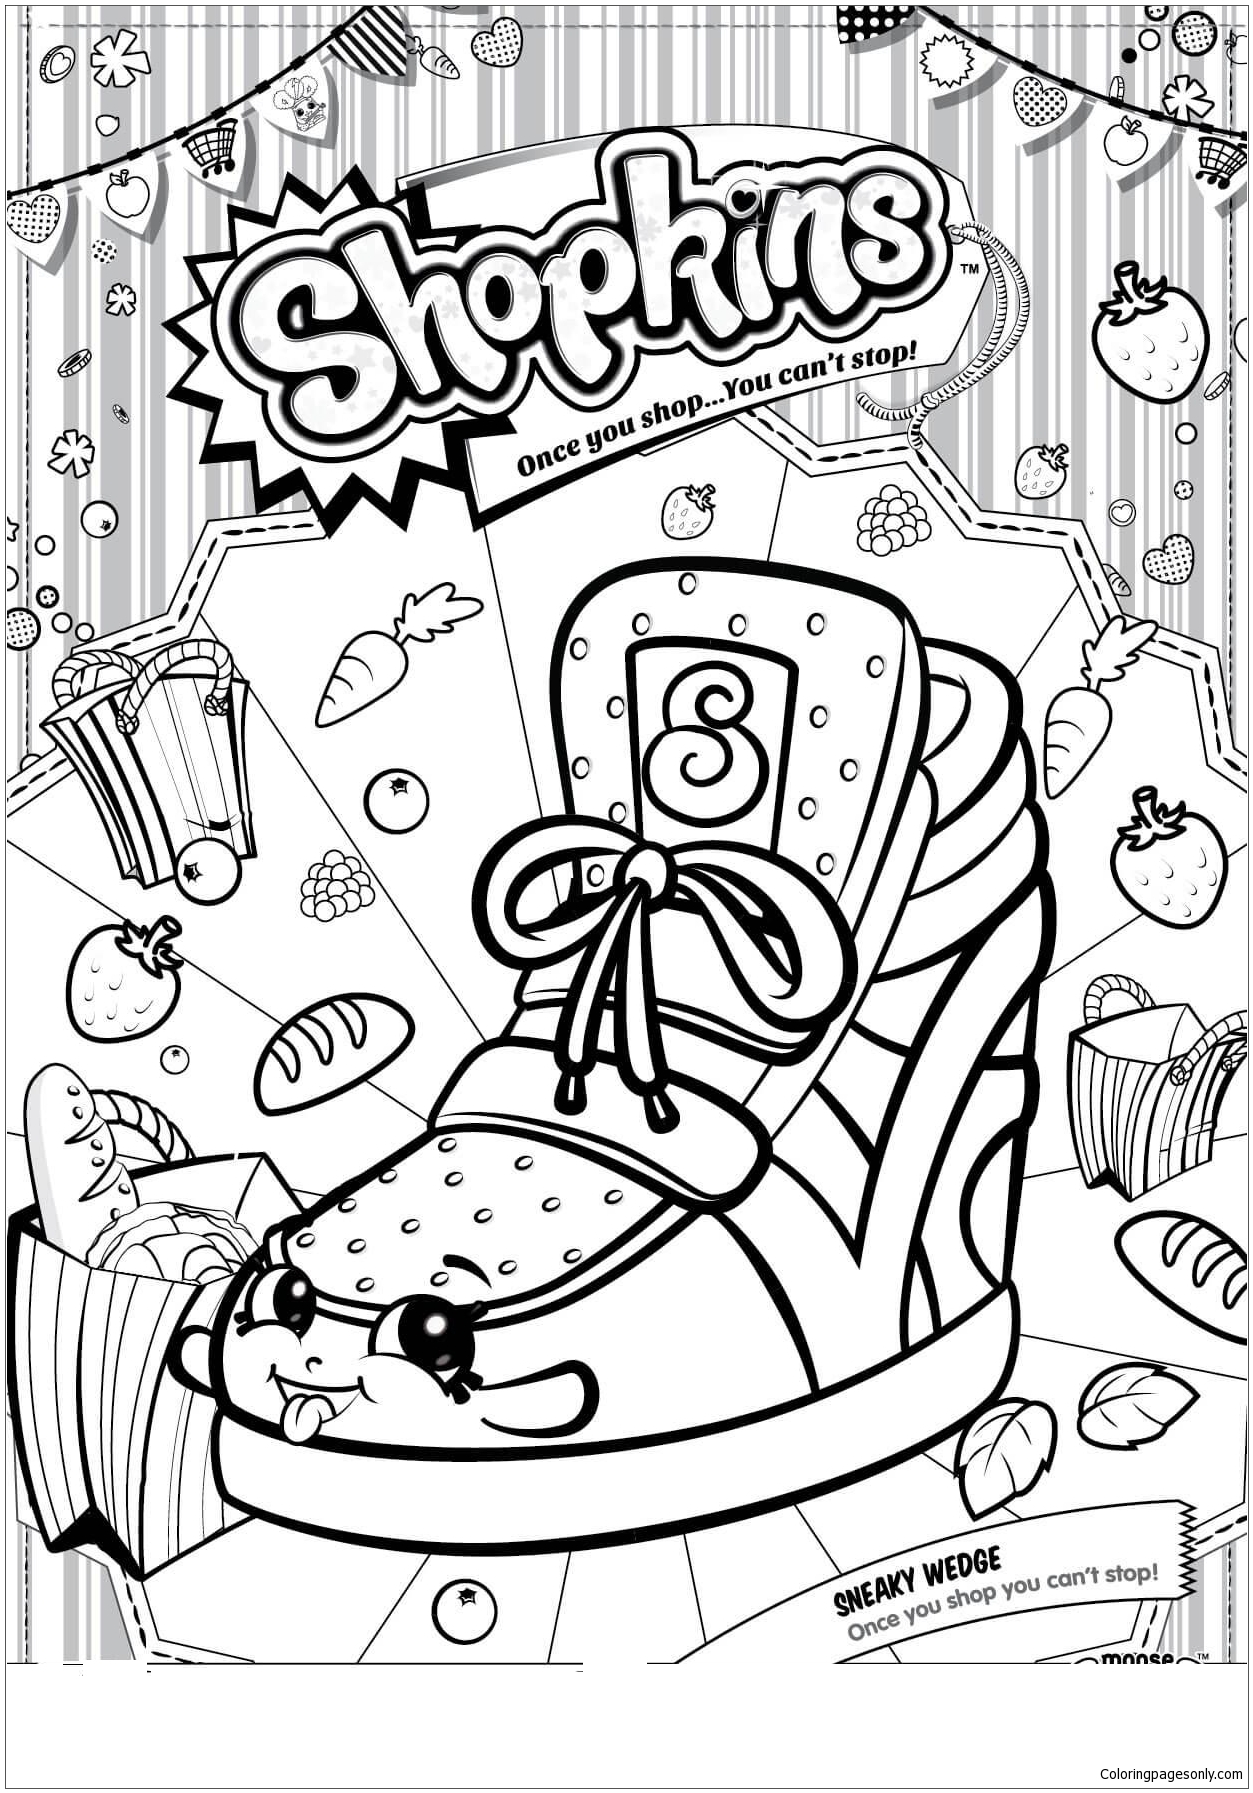 Sneaky Wedge Shopkin Season 2 Coloring Page